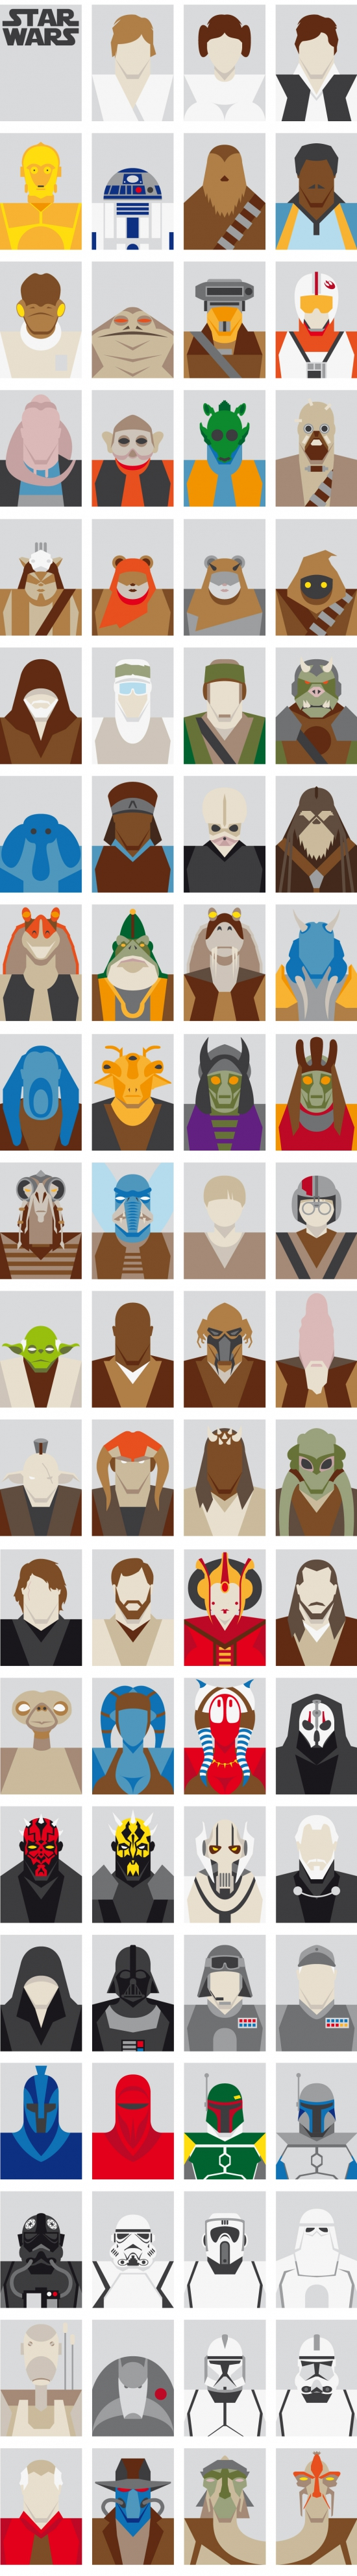 minimal faces star wars.jpg